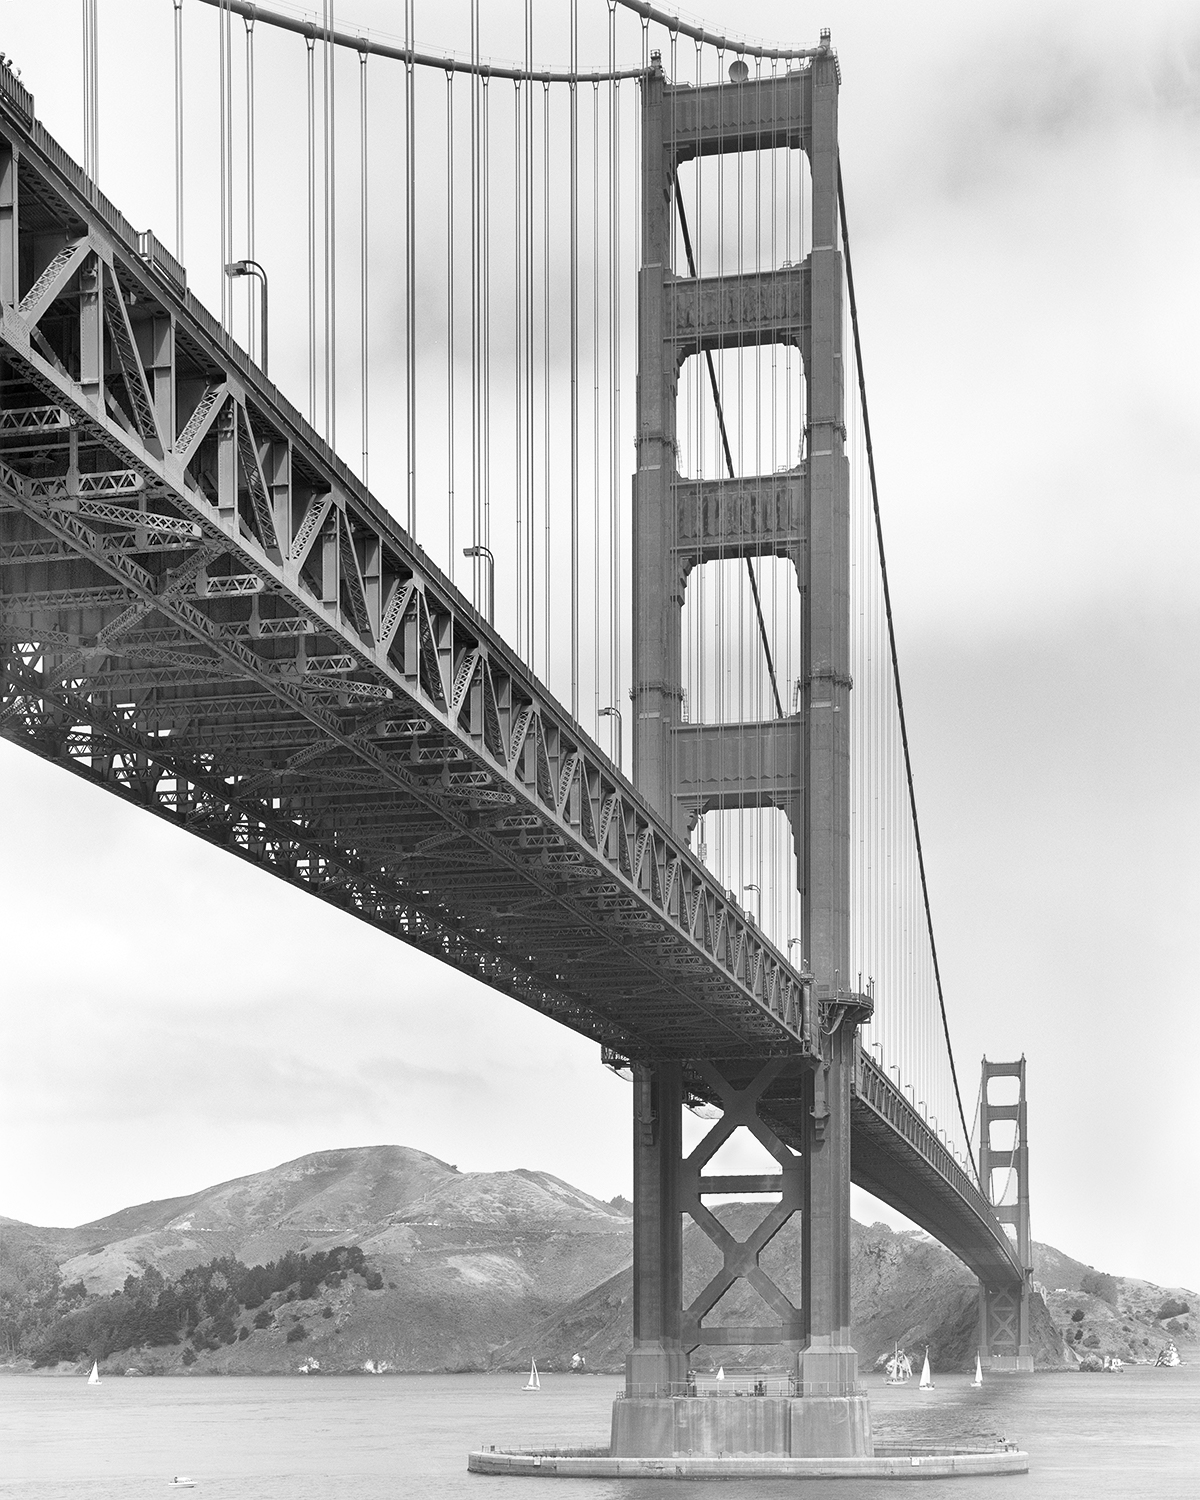 Golden Gate Bridge, San Francisco, 2016